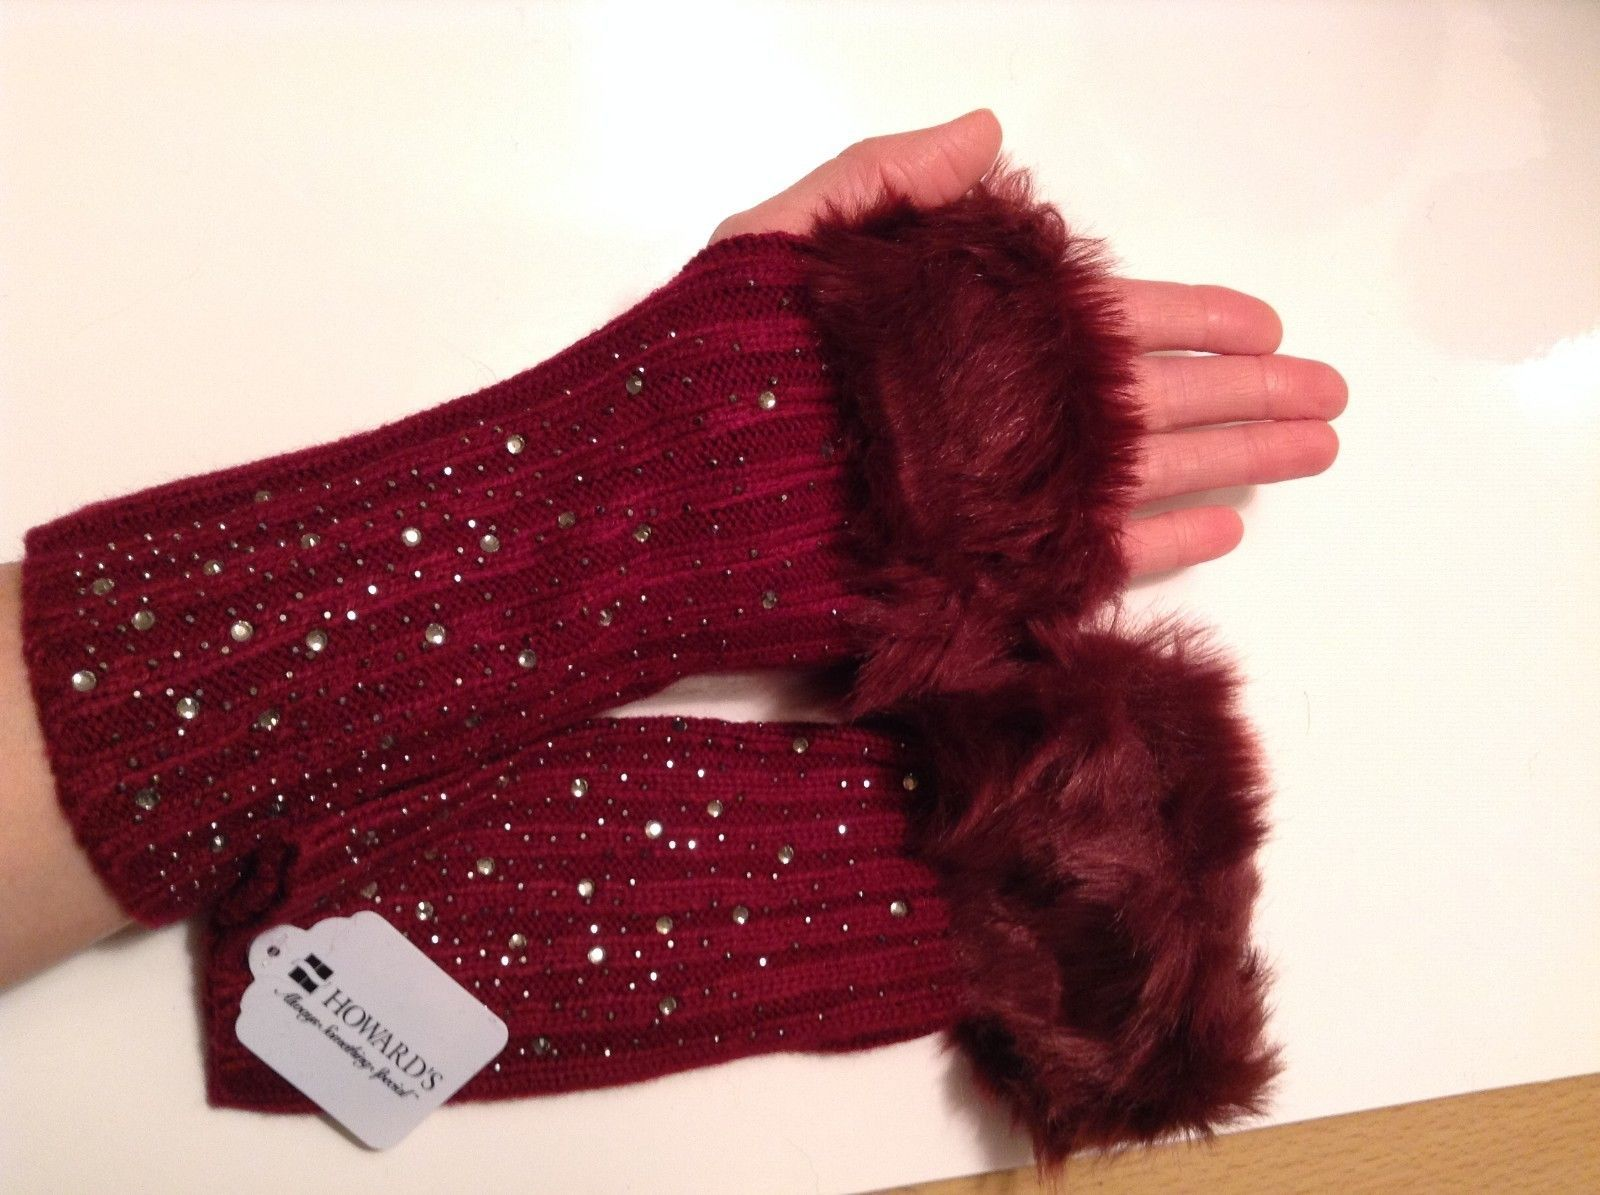 Fun SPARKLE snow knit fingerless mittens fur color choice holiday gift